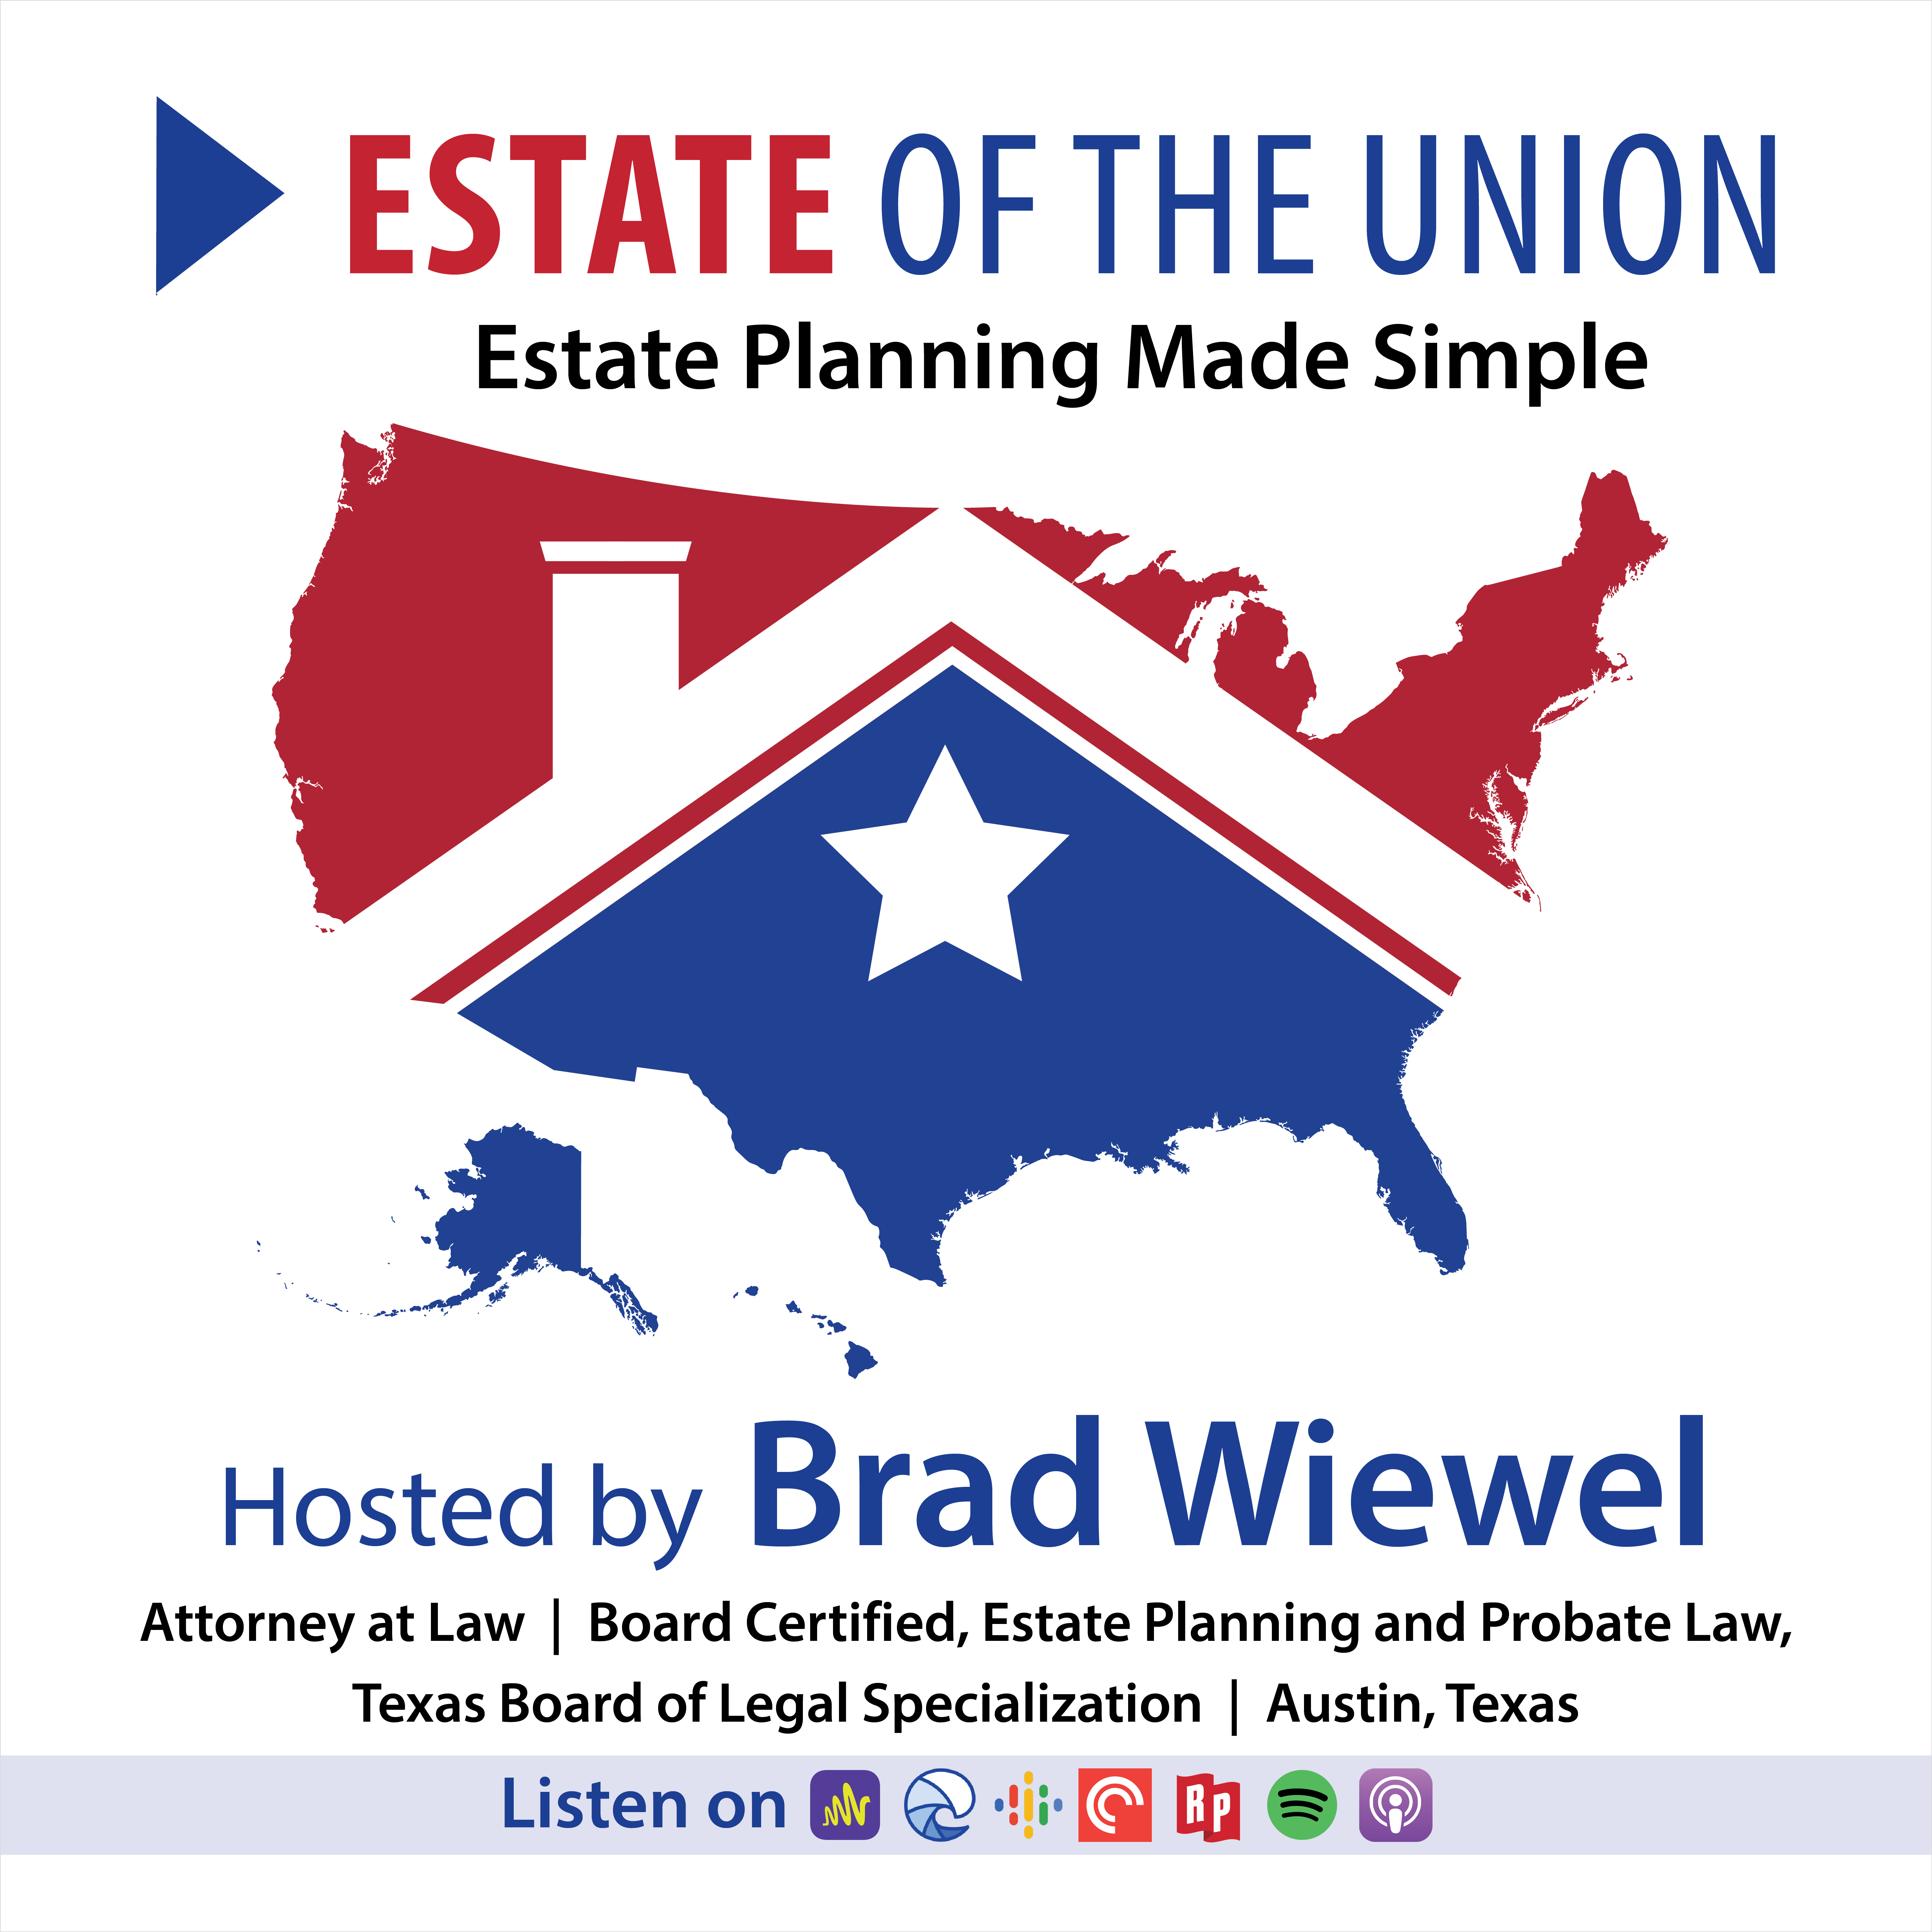 The Estate of The Union Episode 9 out now